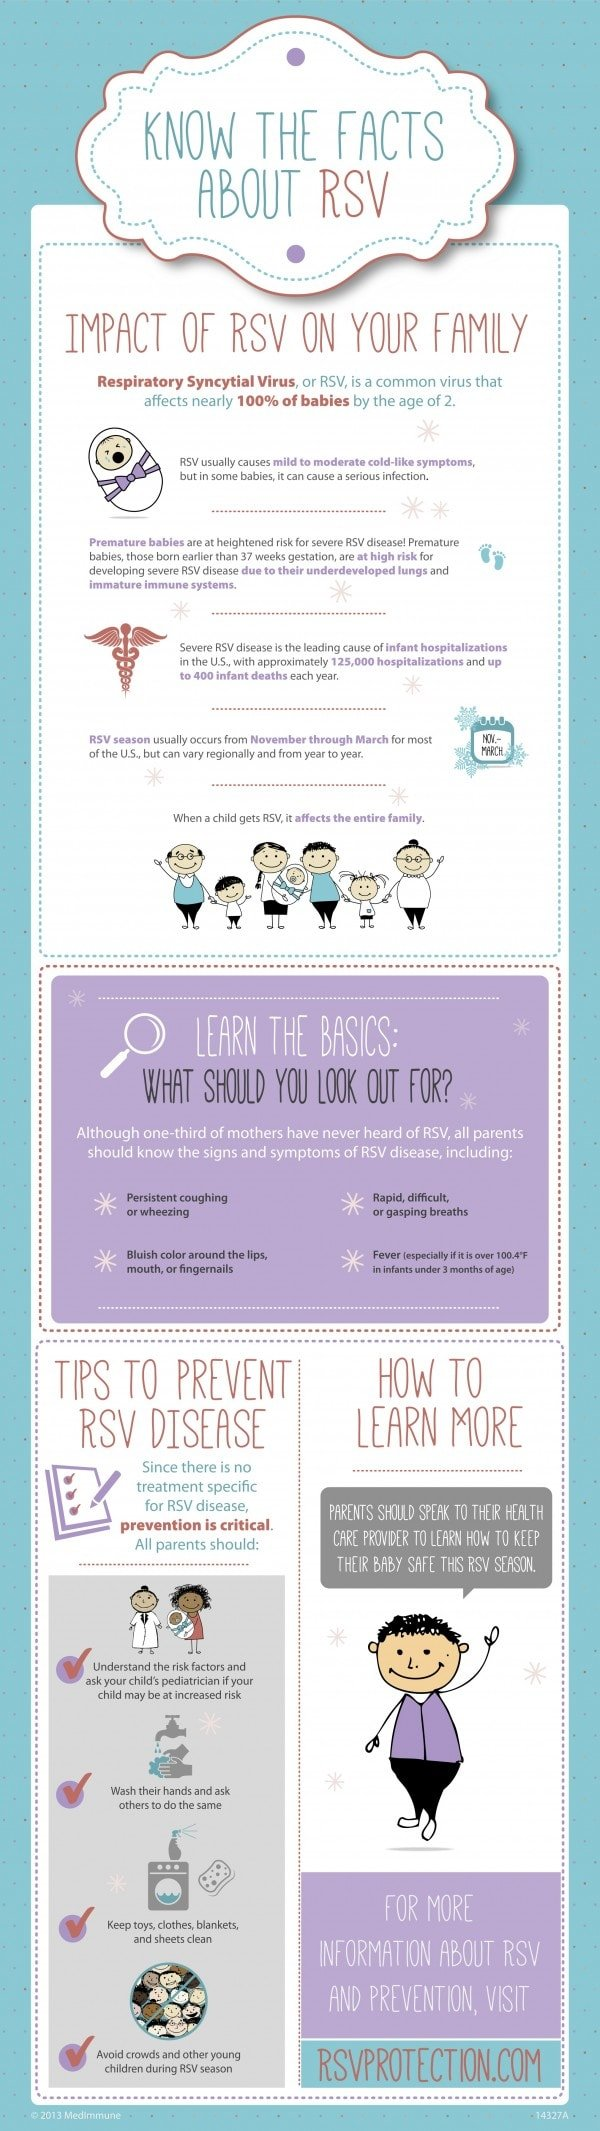 World Prematurity Day 2013 - Know the Facts About RSV #RSVAwareness #MC